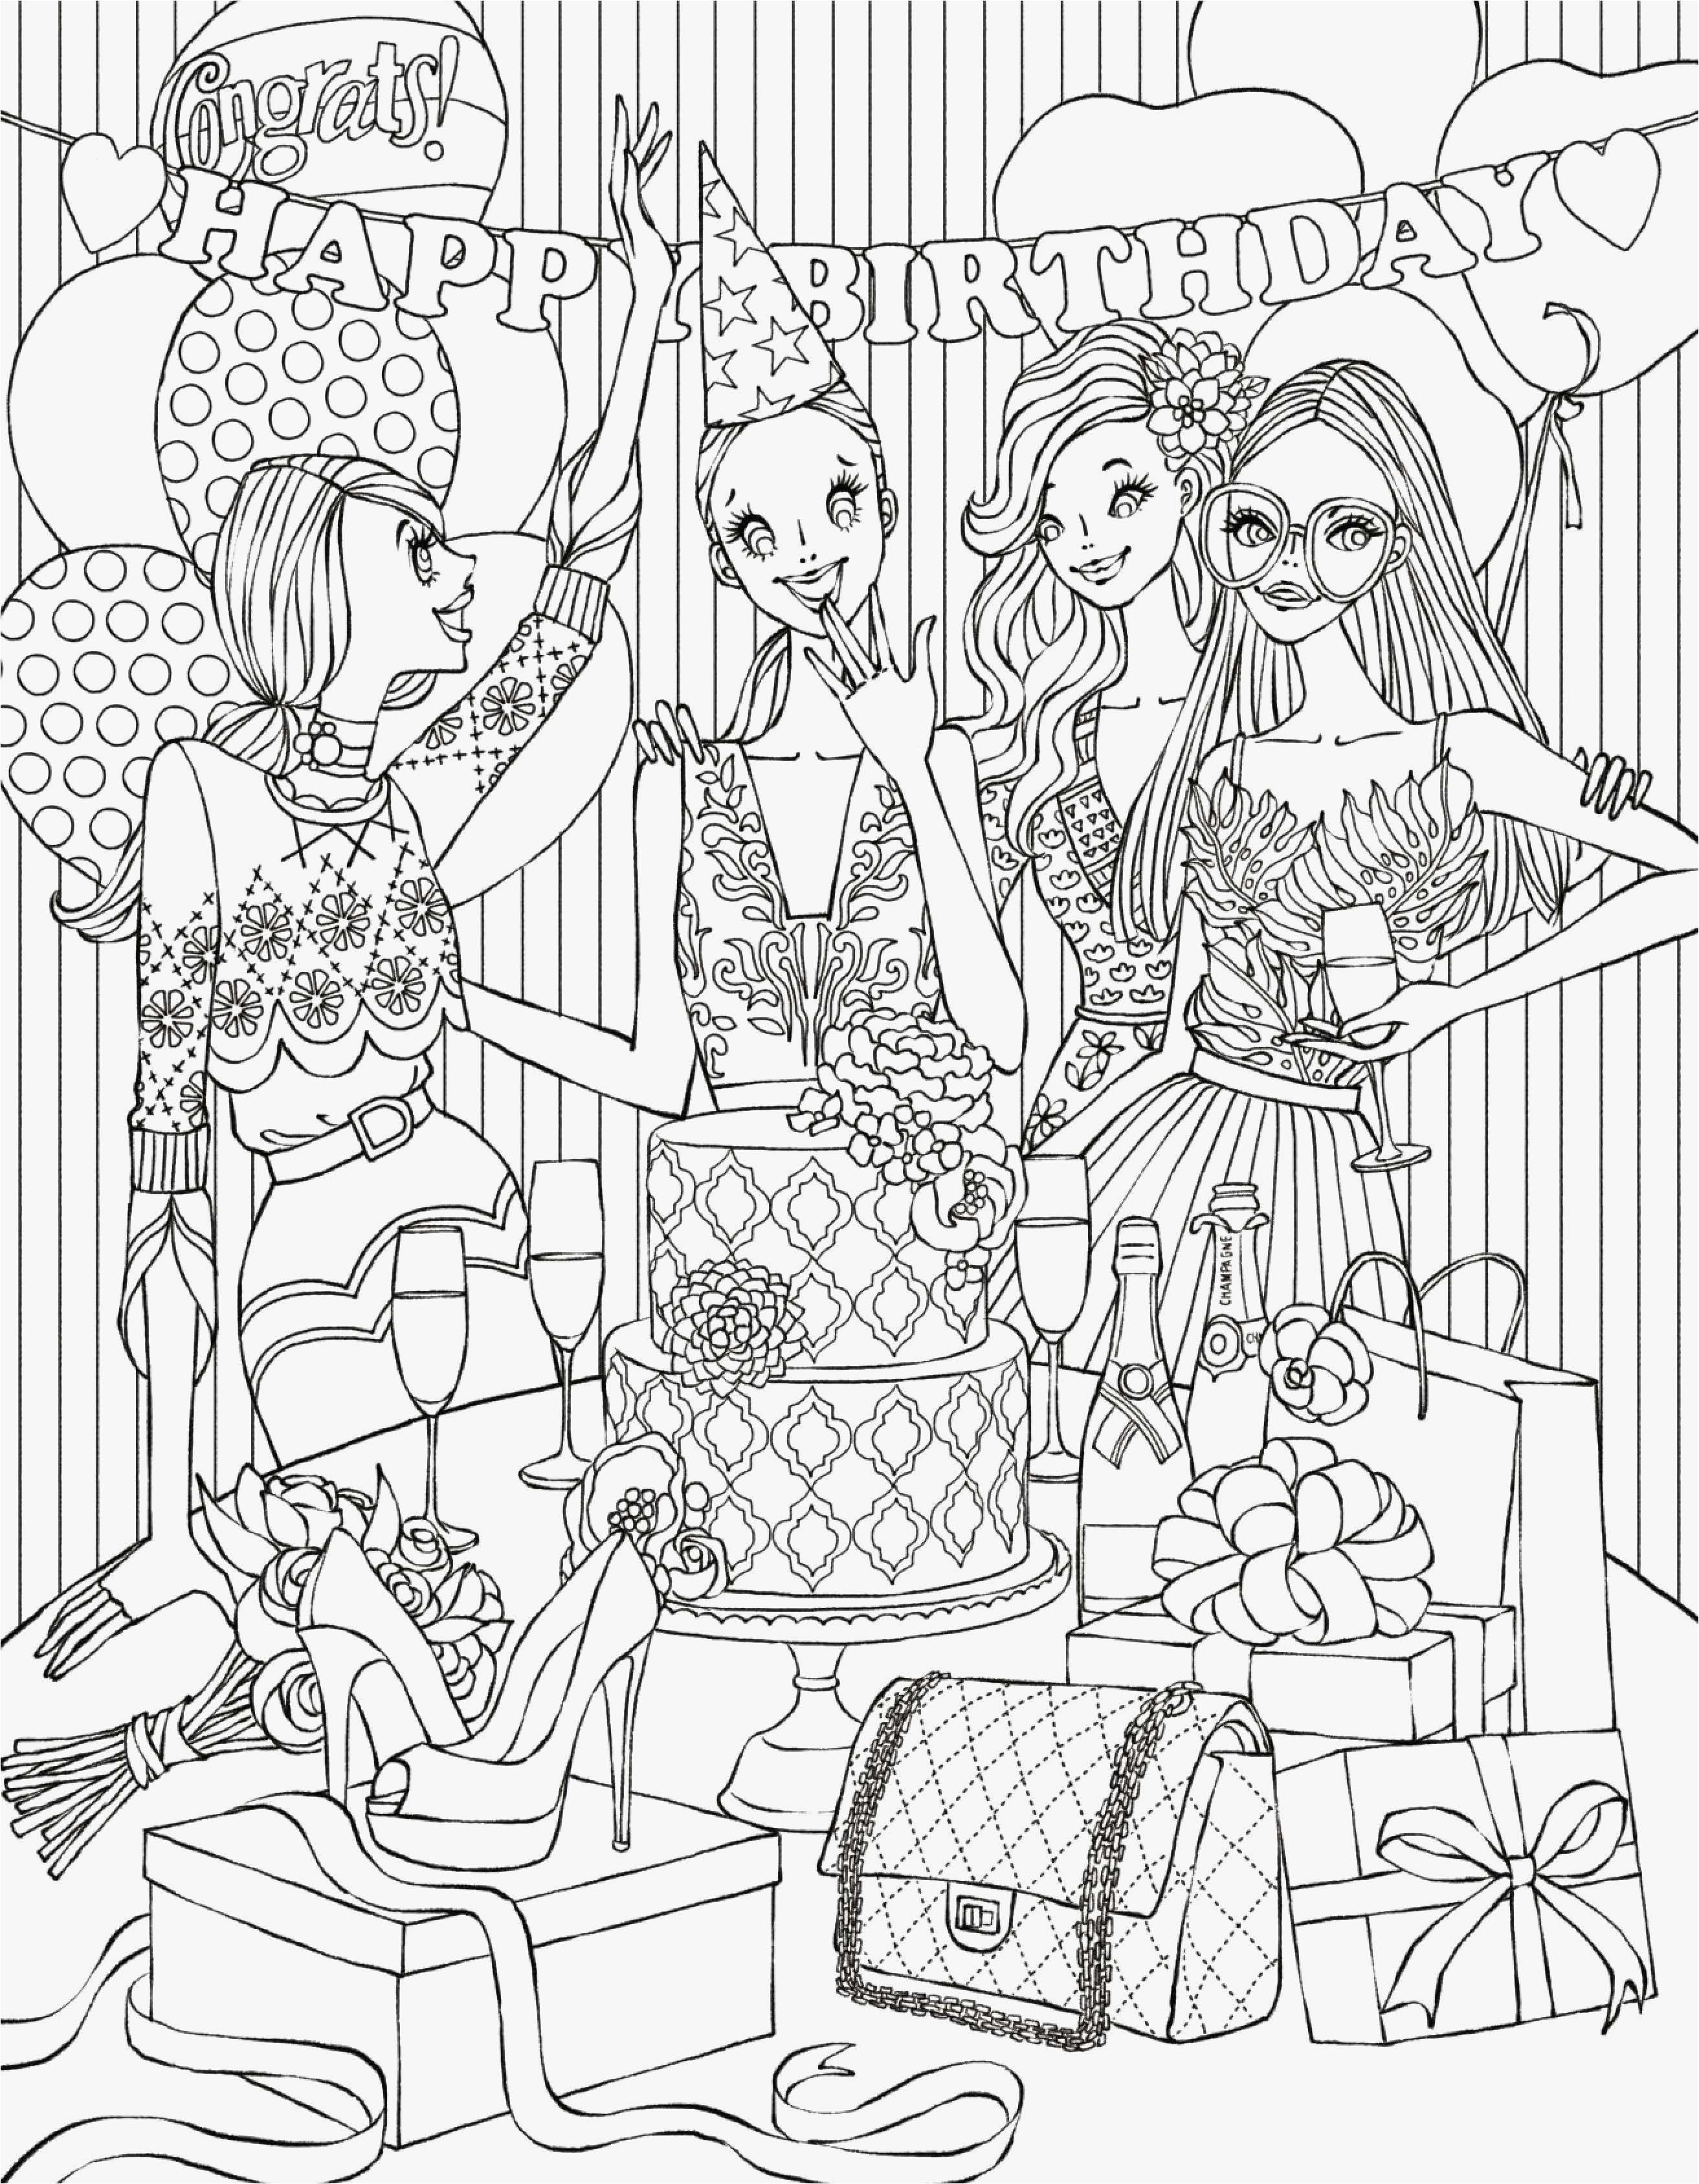 Coloring Pages Circus  Printable 12n - To print for your project